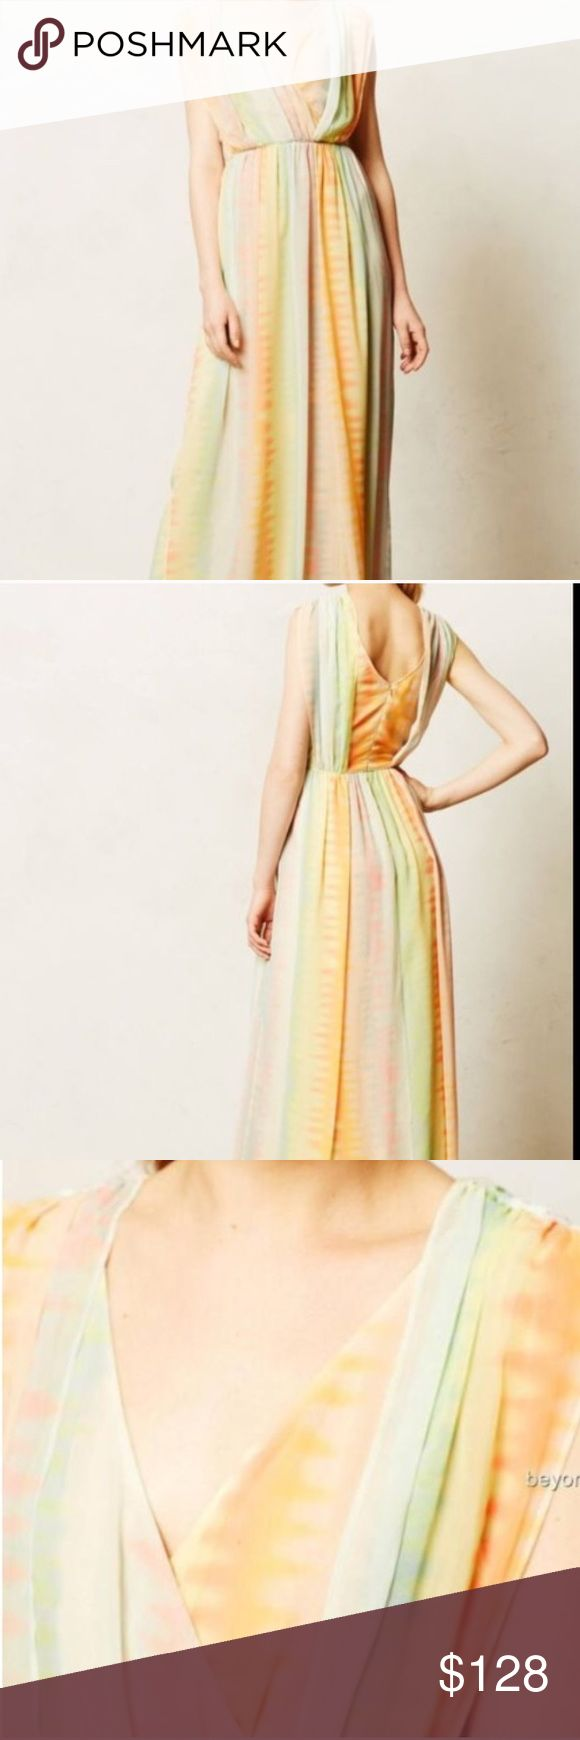 Anthropologie pastel maxi dress Anthropologie pastel maxi dress. Perfect for a wedding or event. Anthropologie Dresses Maxi